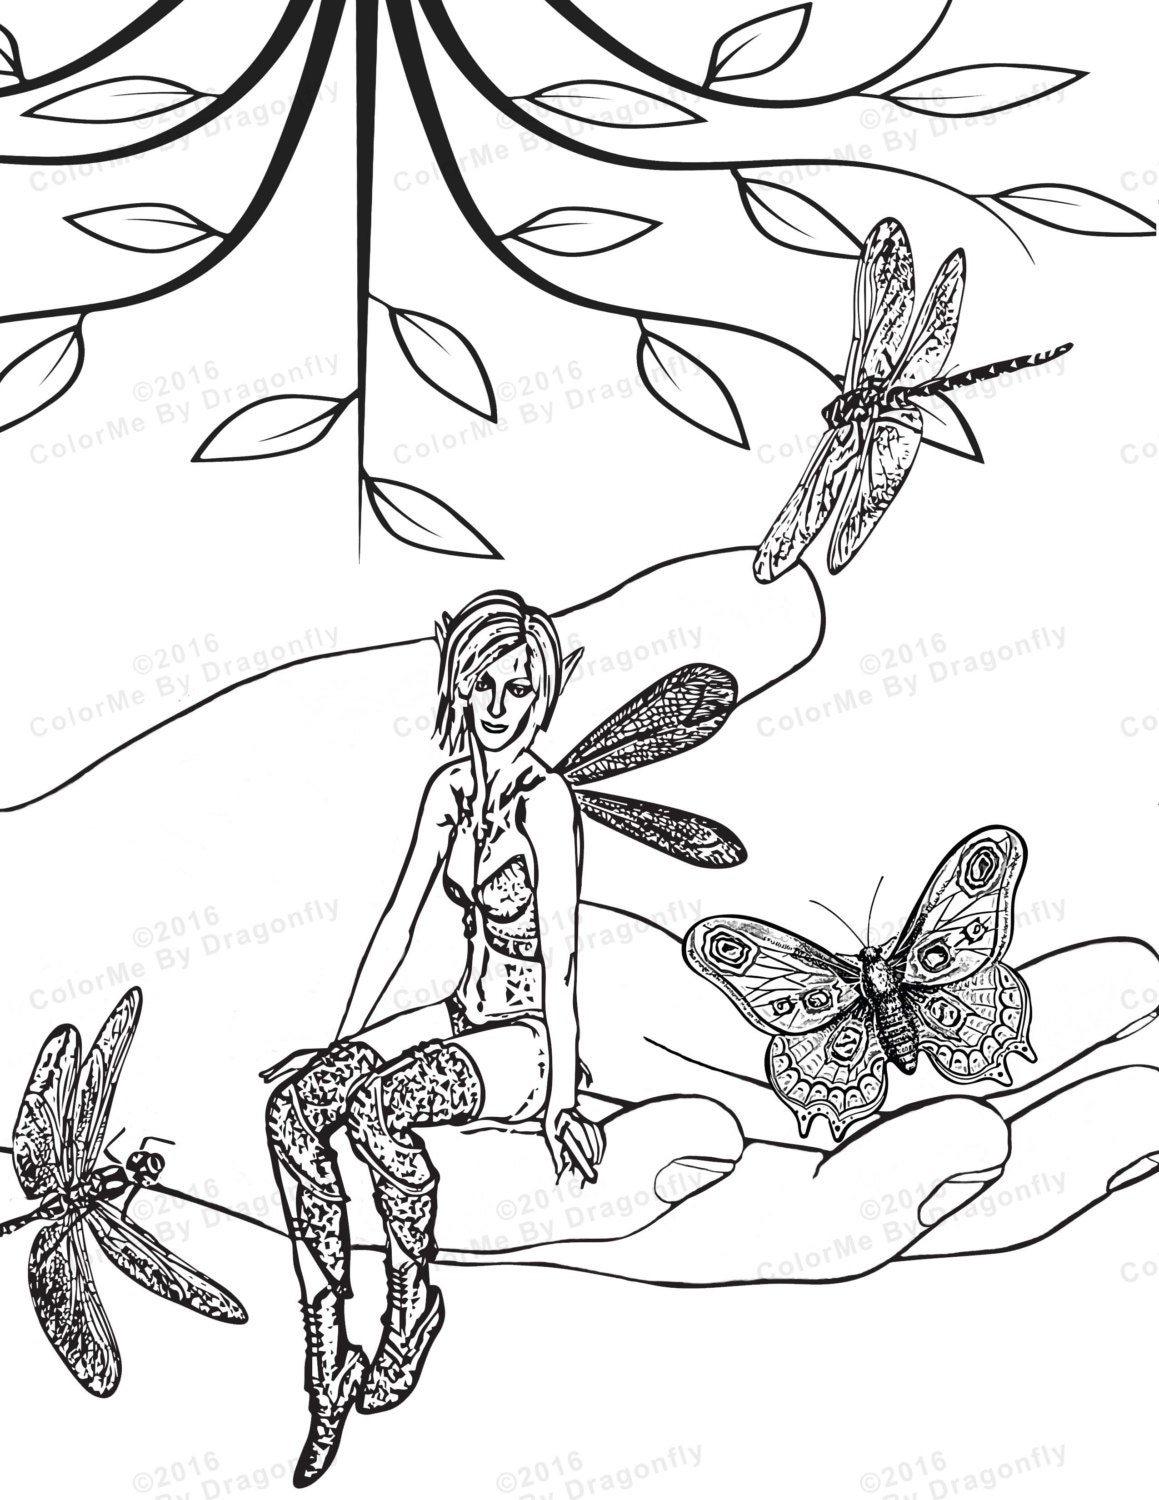 woodland fairy coloring page fairy wings fairy fantasy. Black Bedroom Furniture Sets. Home Design Ideas